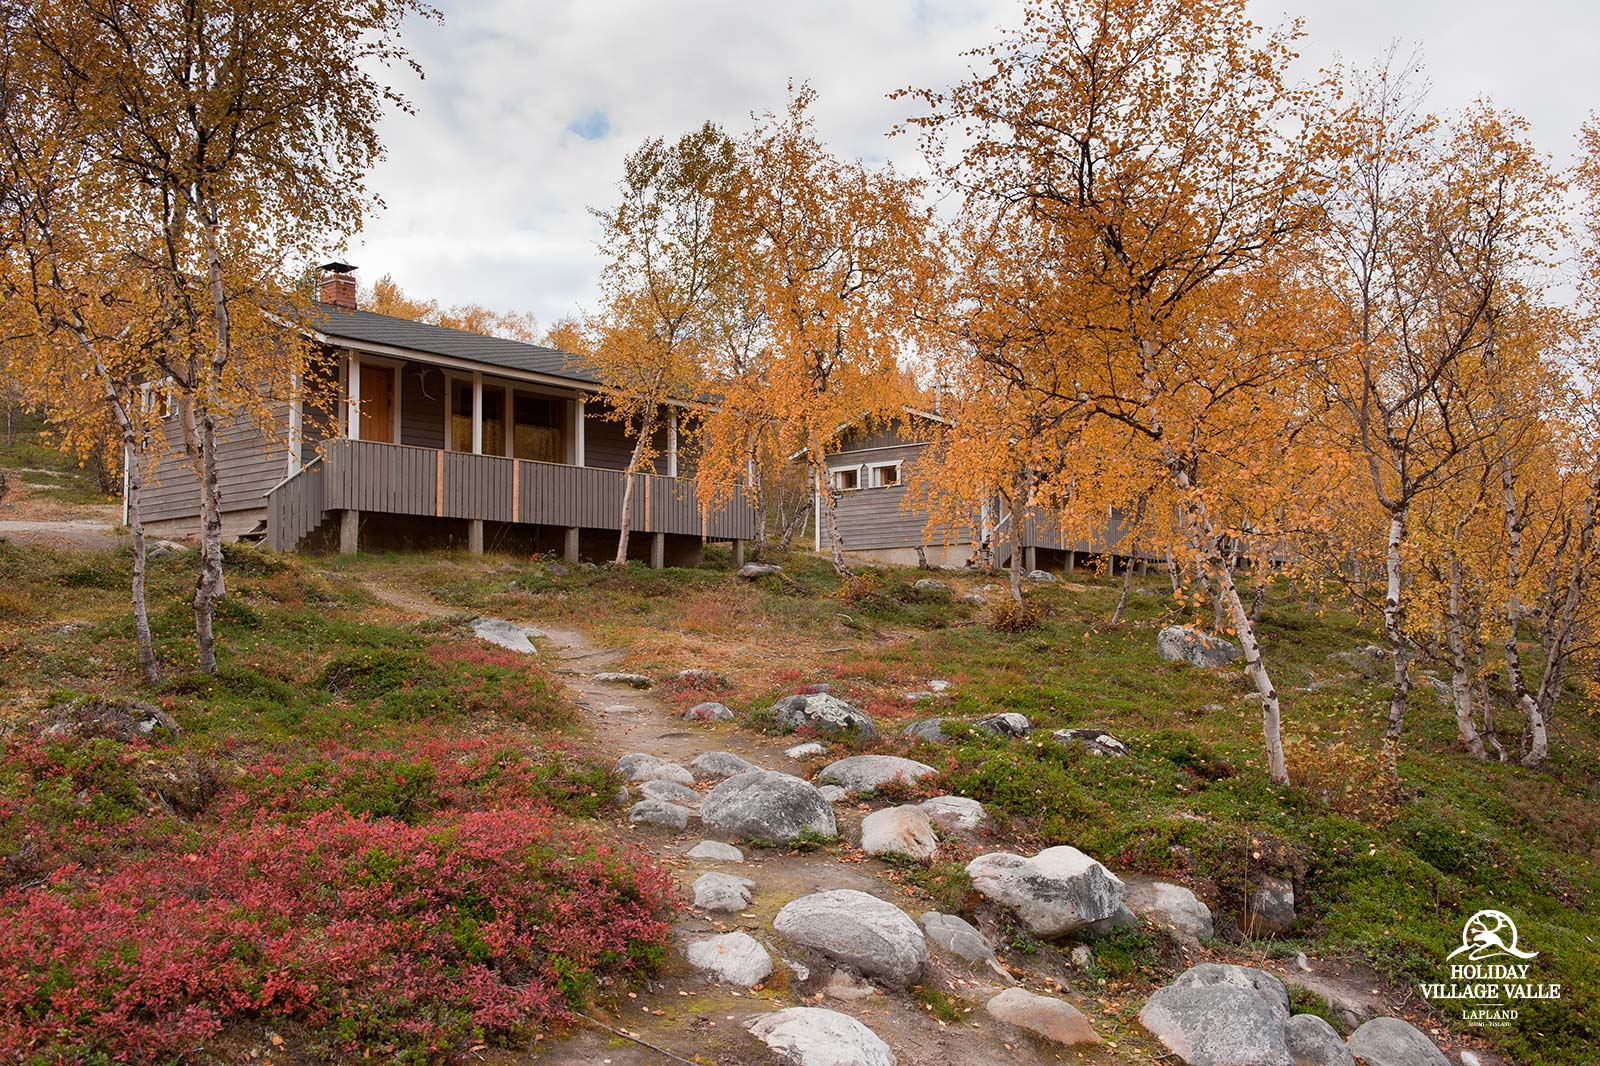 gallery-cabin-holiday-village-valle-lapland-023